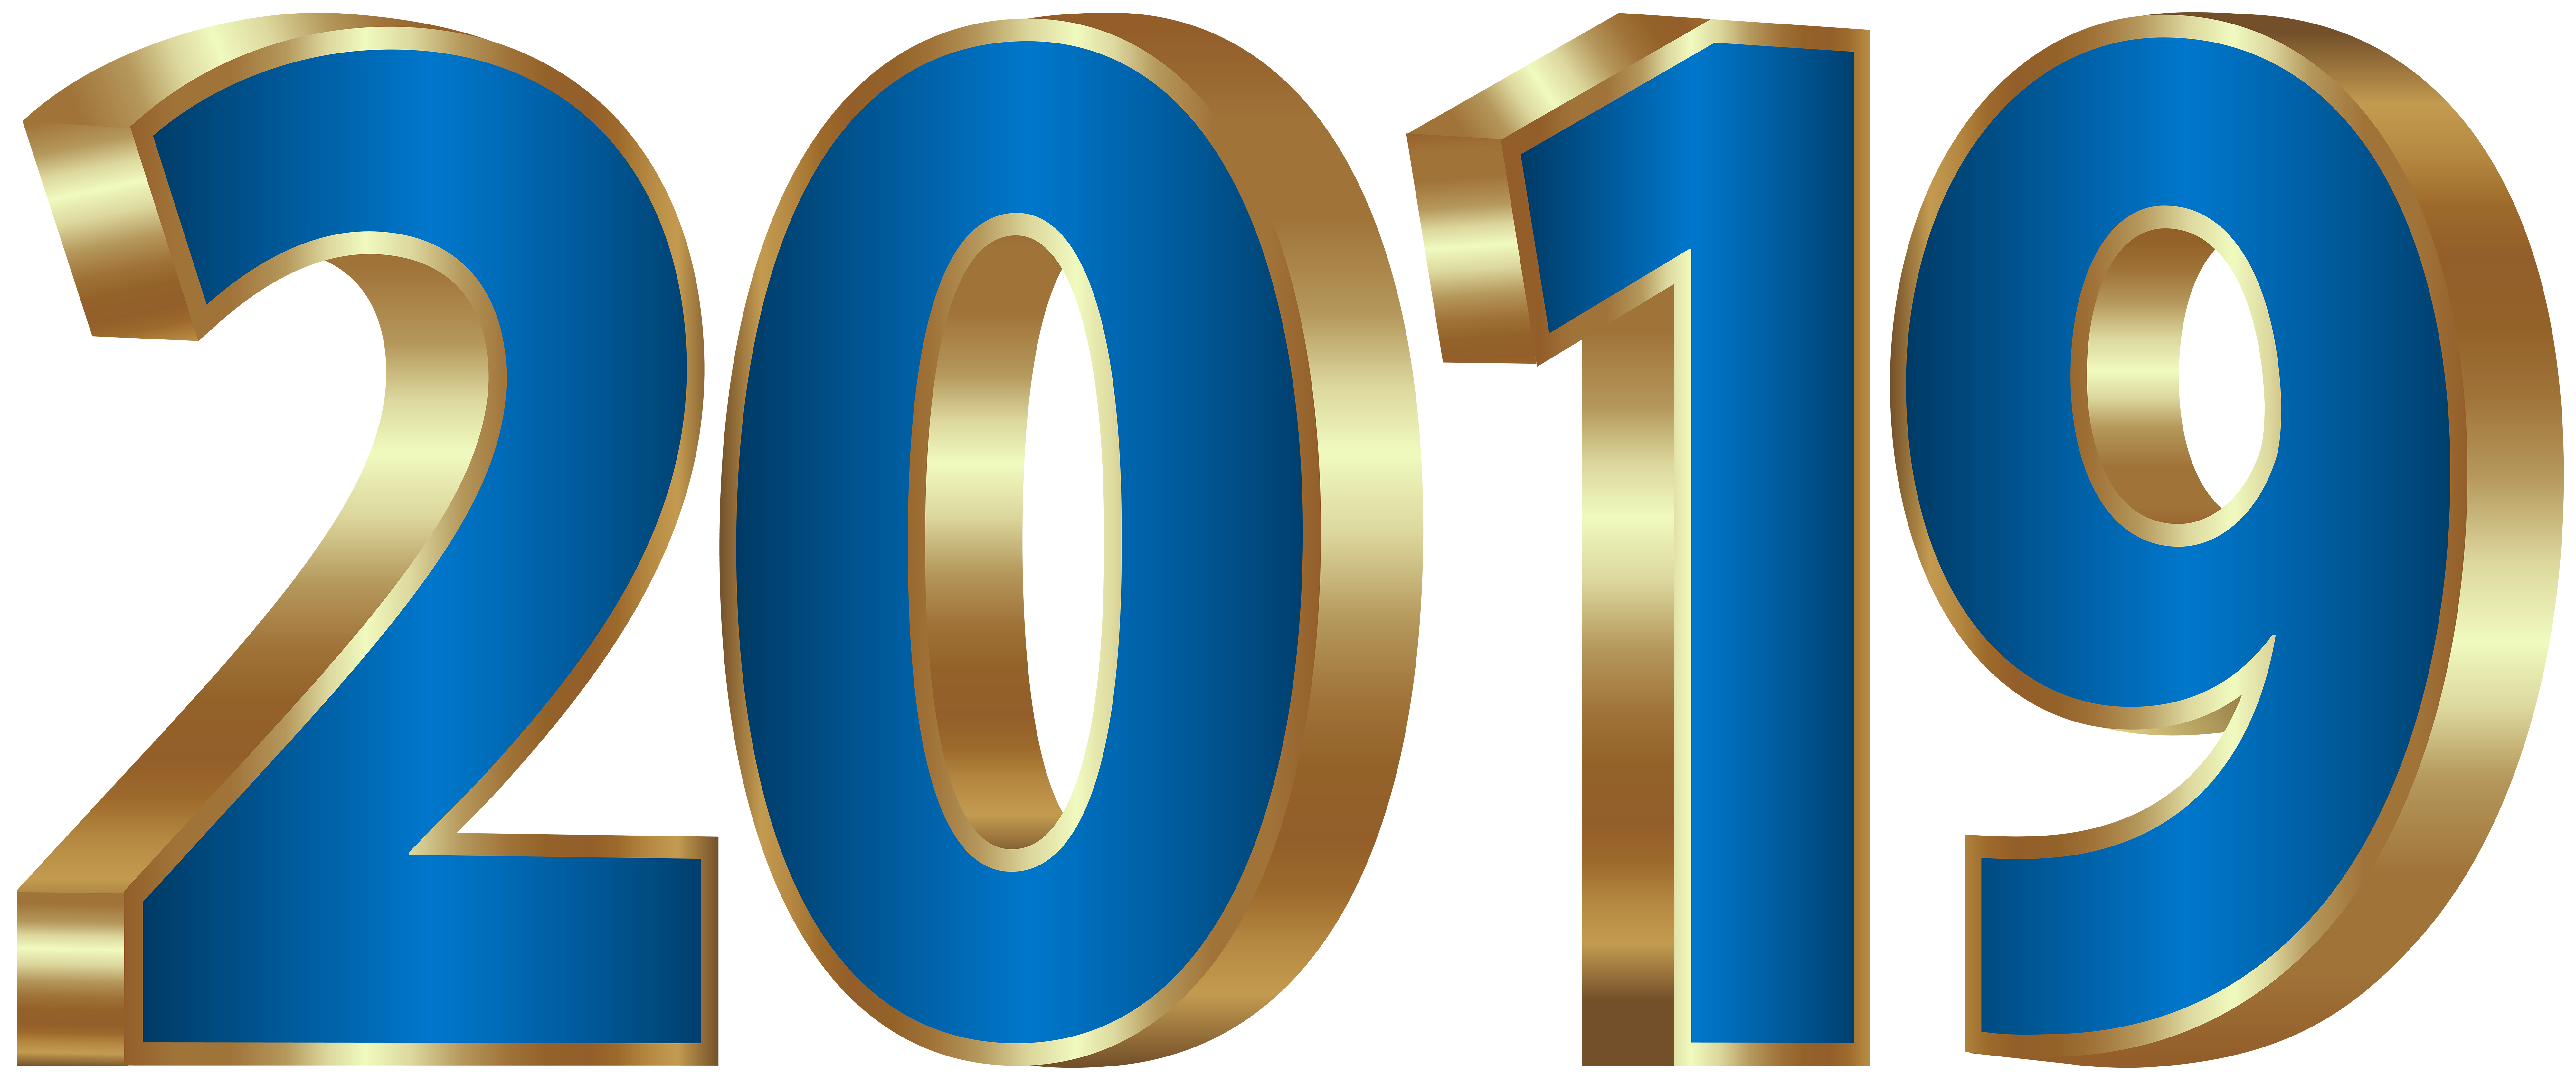 2019 Gold and Blue PNG Clipart Image.